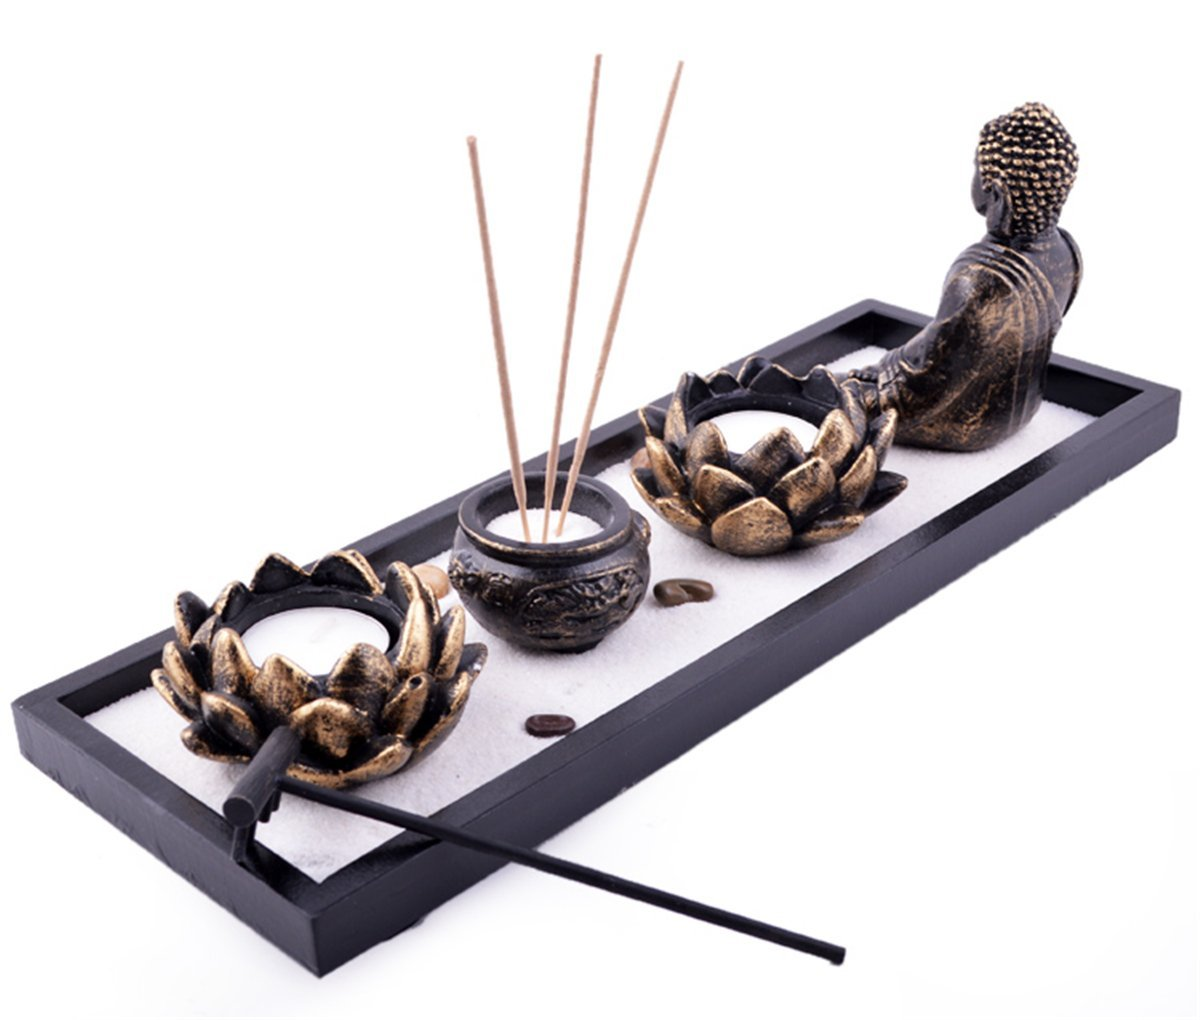 My zen decor zen decor for houses gardens bedrooms and everyday